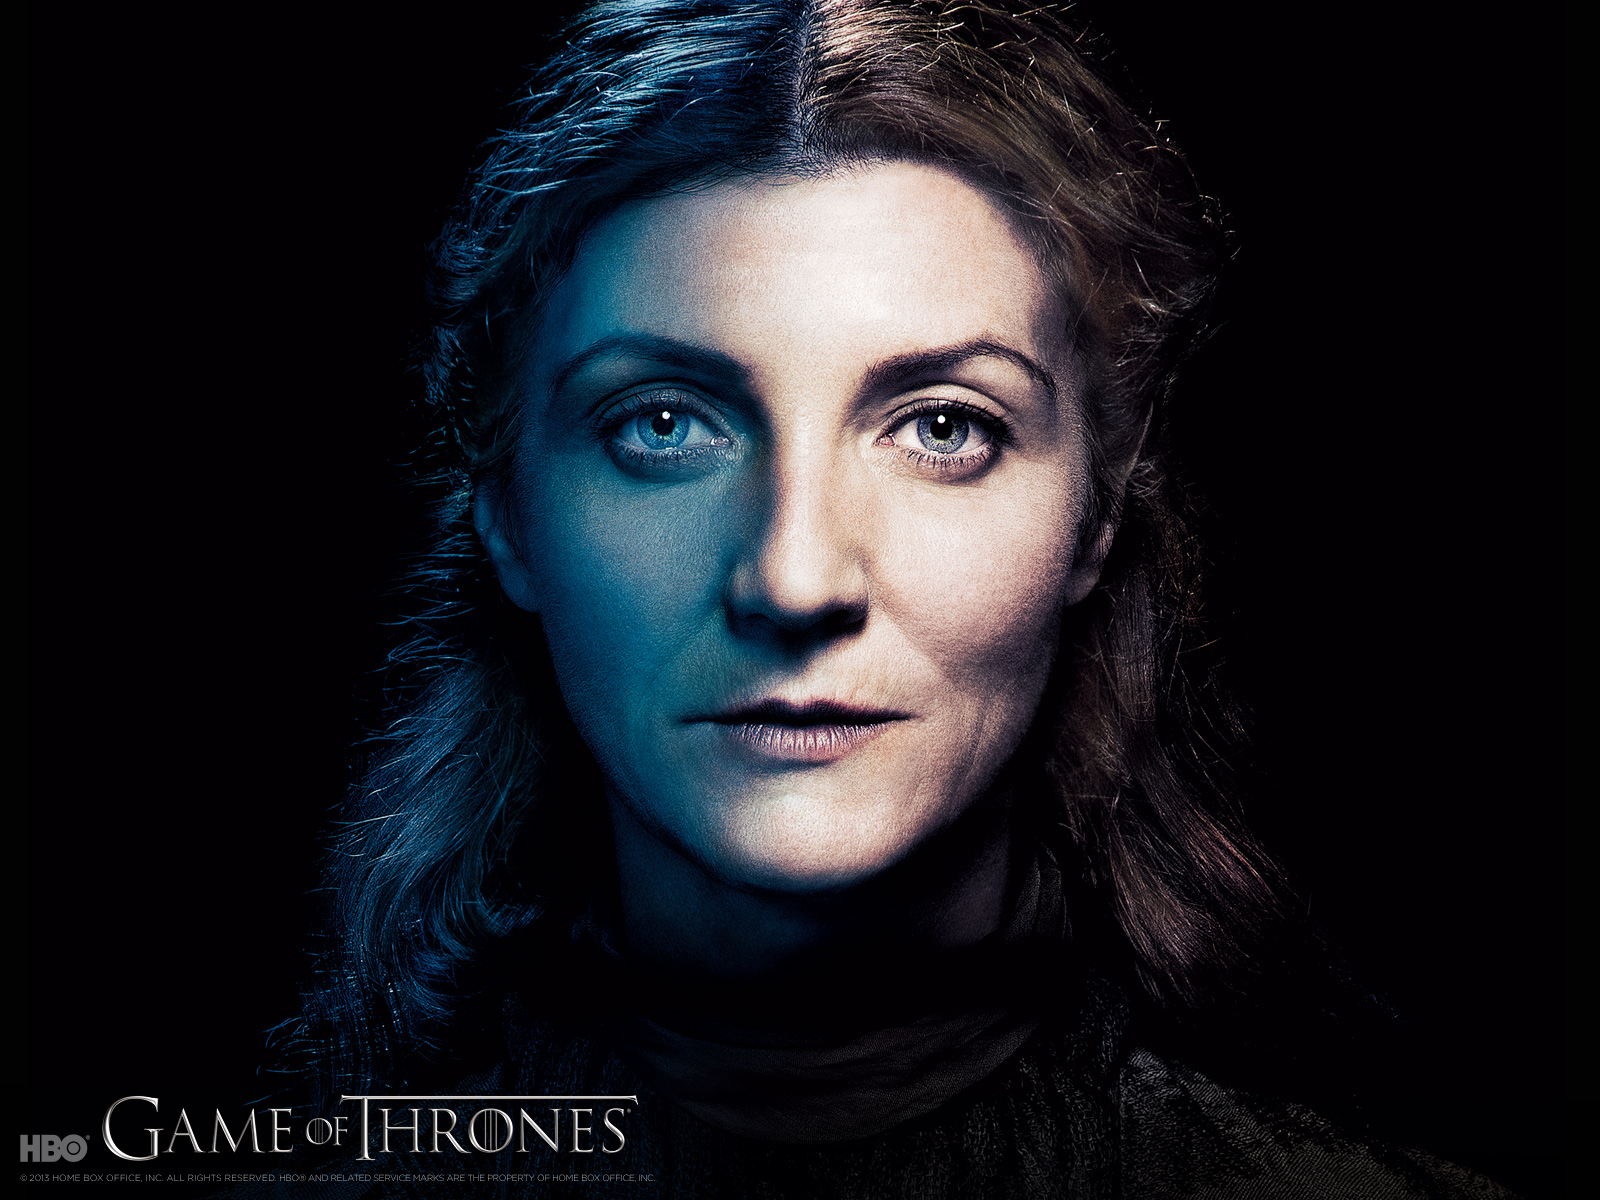 Catelyn Stark - Game of Thrones Wallpaper (33779430) - Fanpop